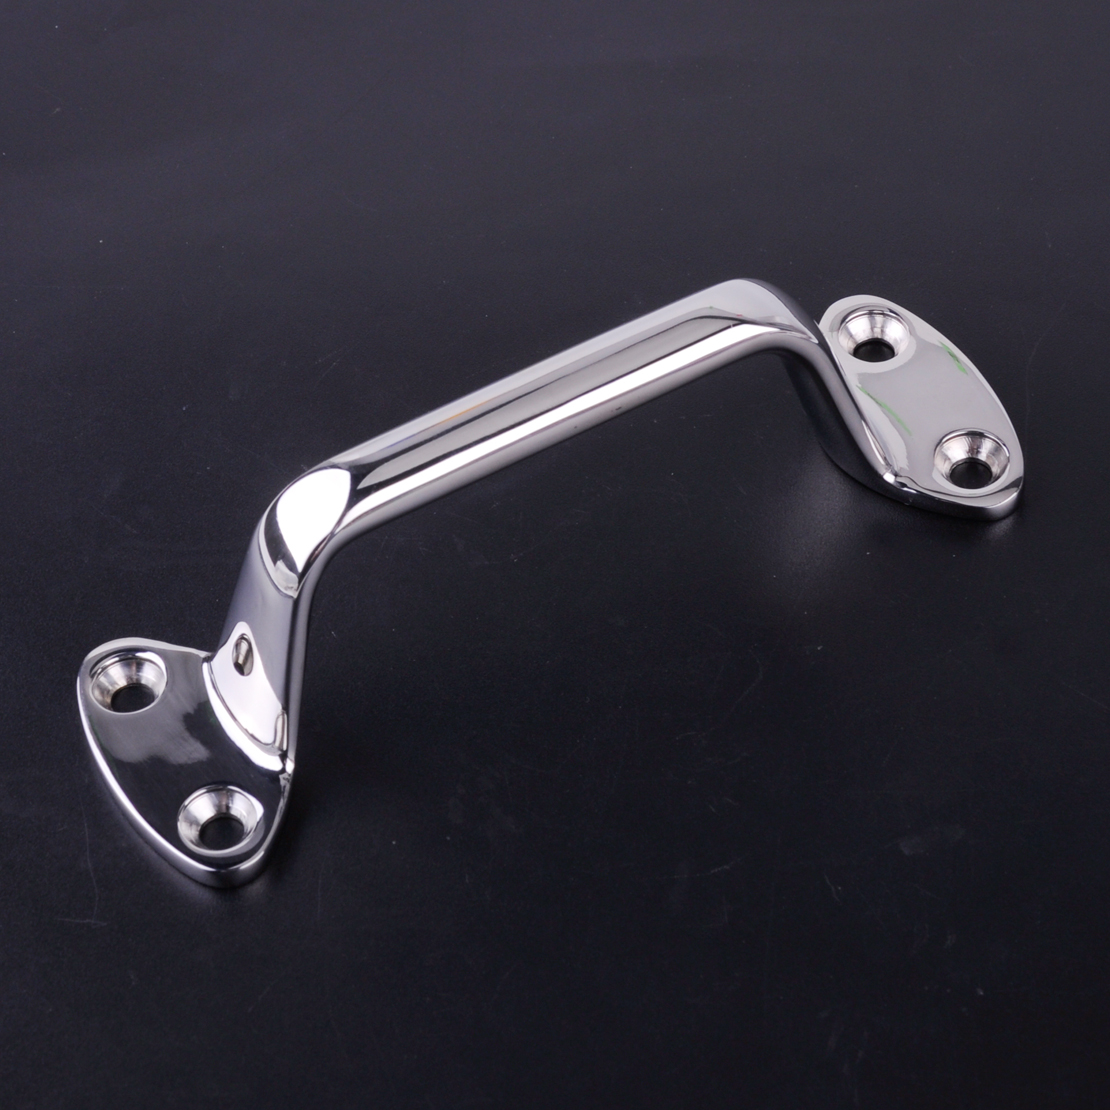 CITALL High Quality 316 Stainless Steel 150mm Boat Yacth Marine Large Cleat Door Grab Handle Handrail Pull Replacement